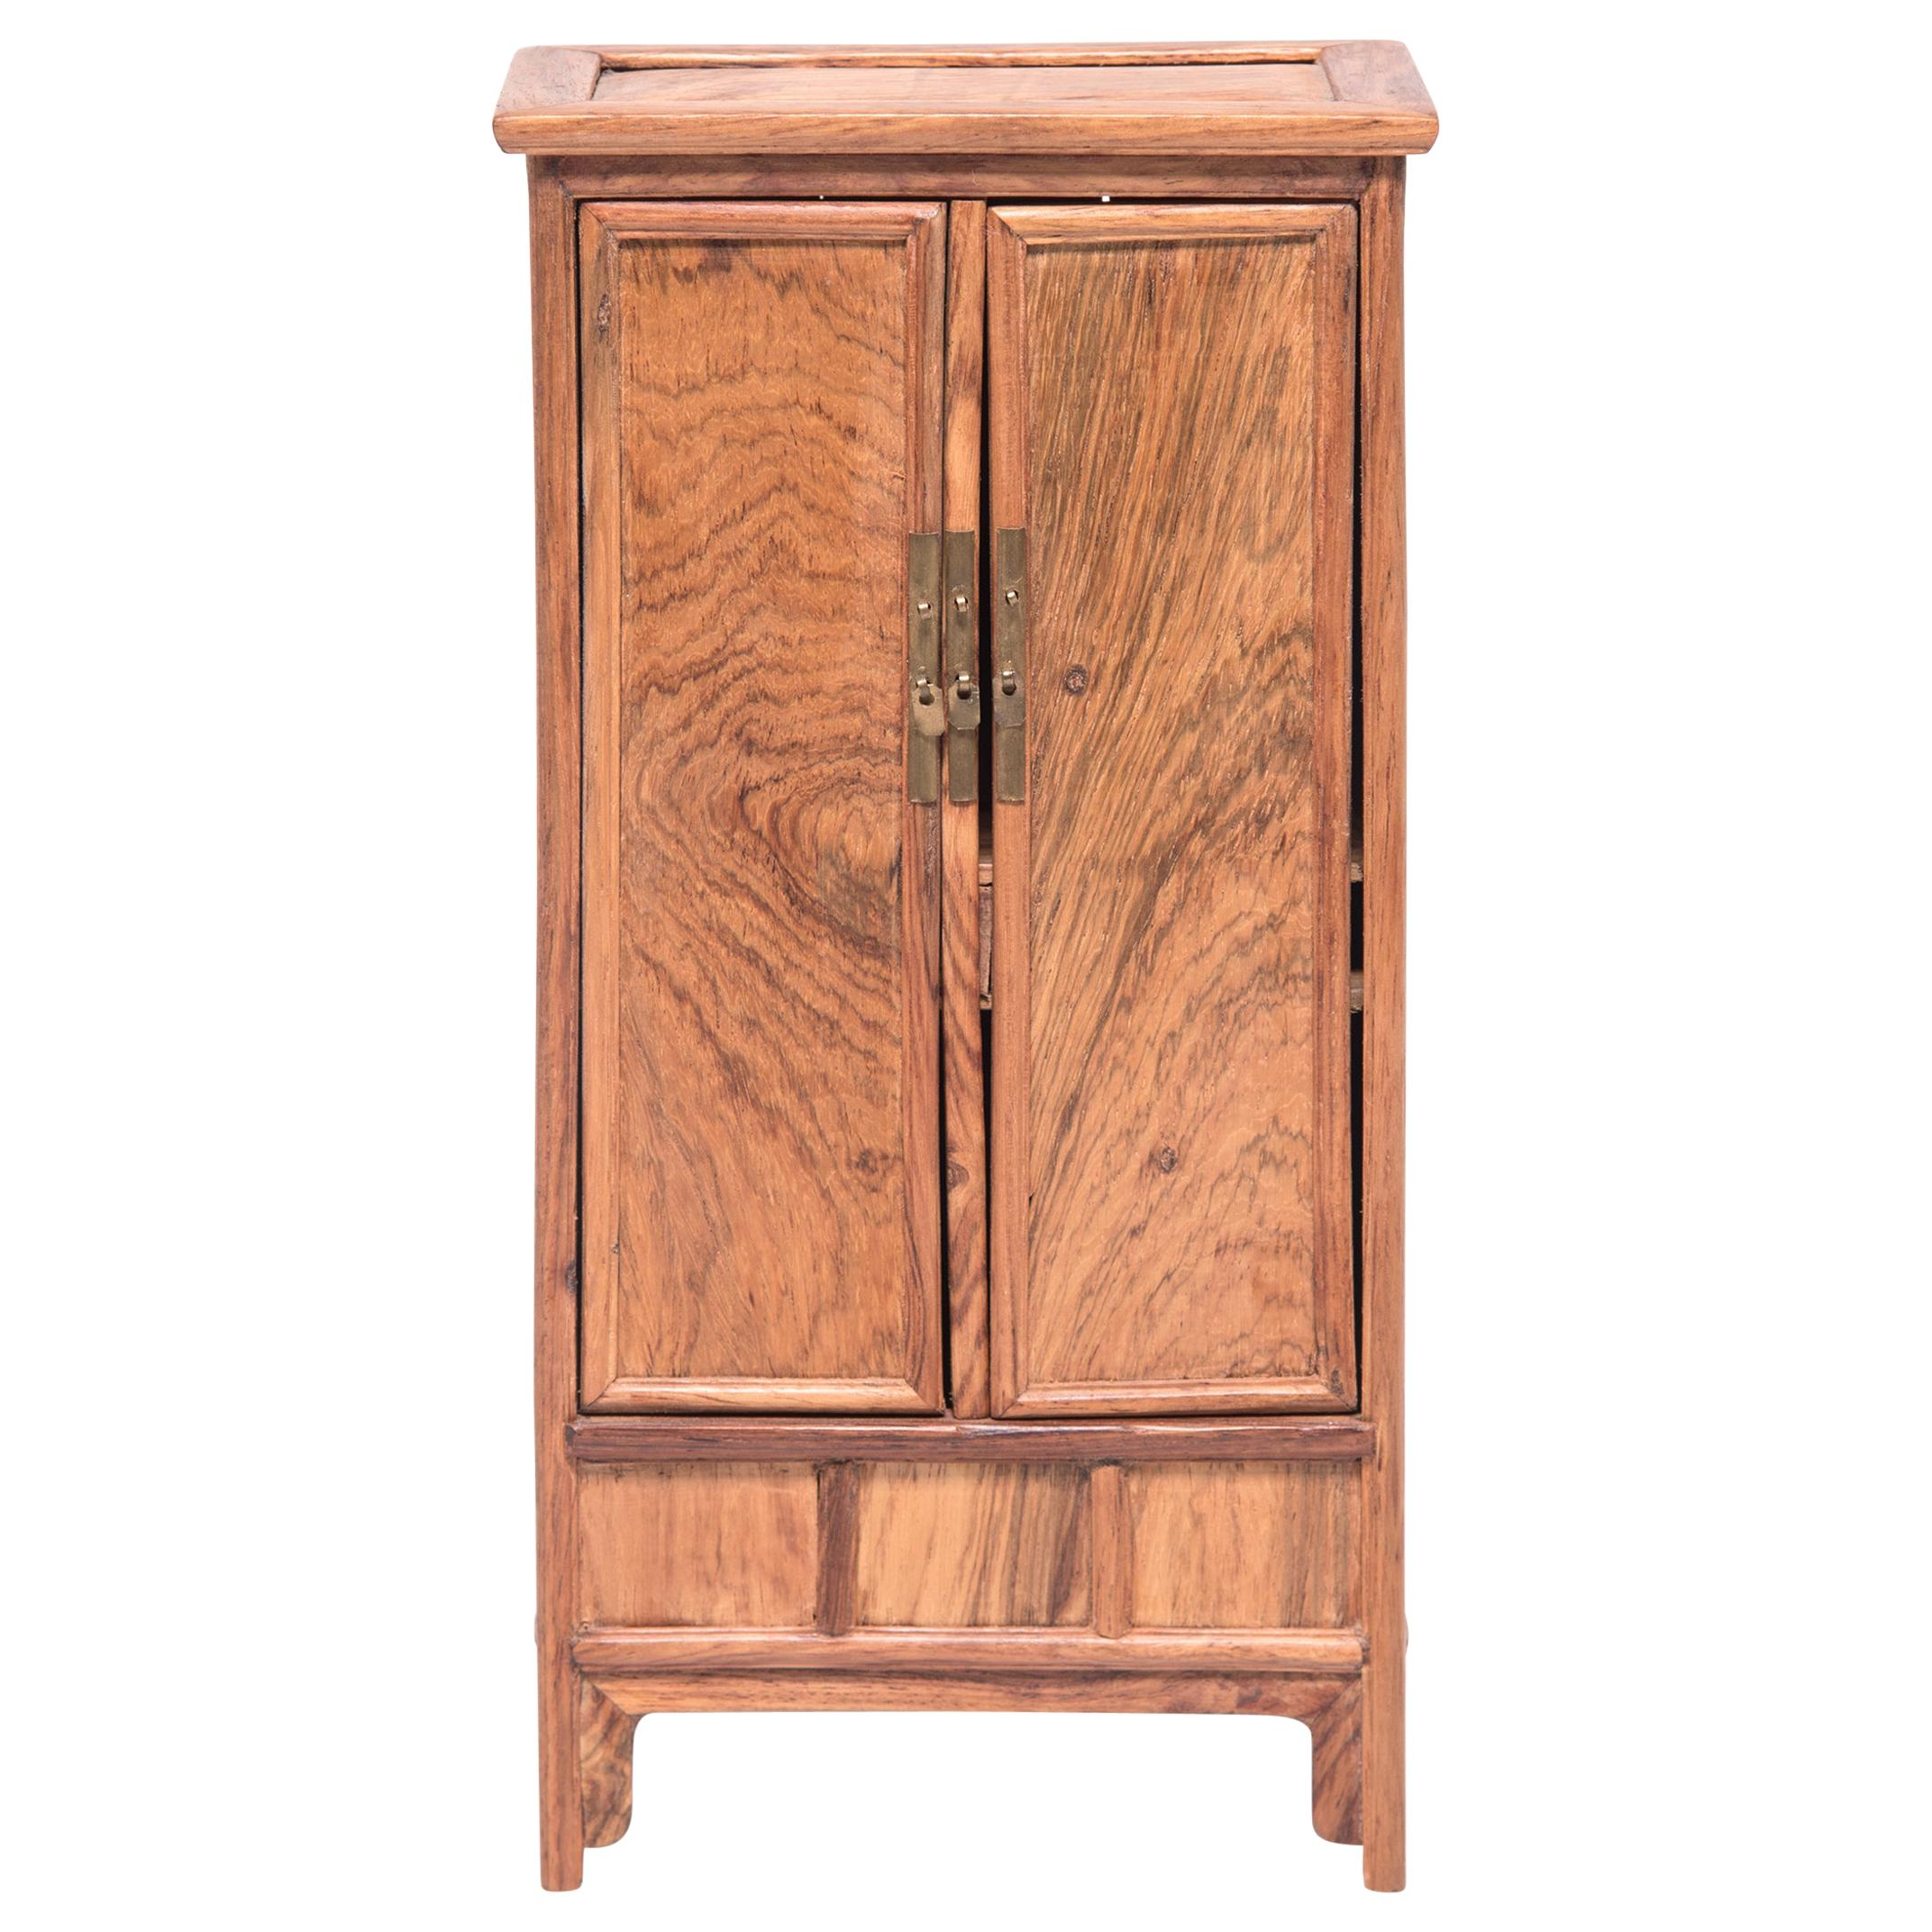 Miniature Chinese Noodle Cabinet